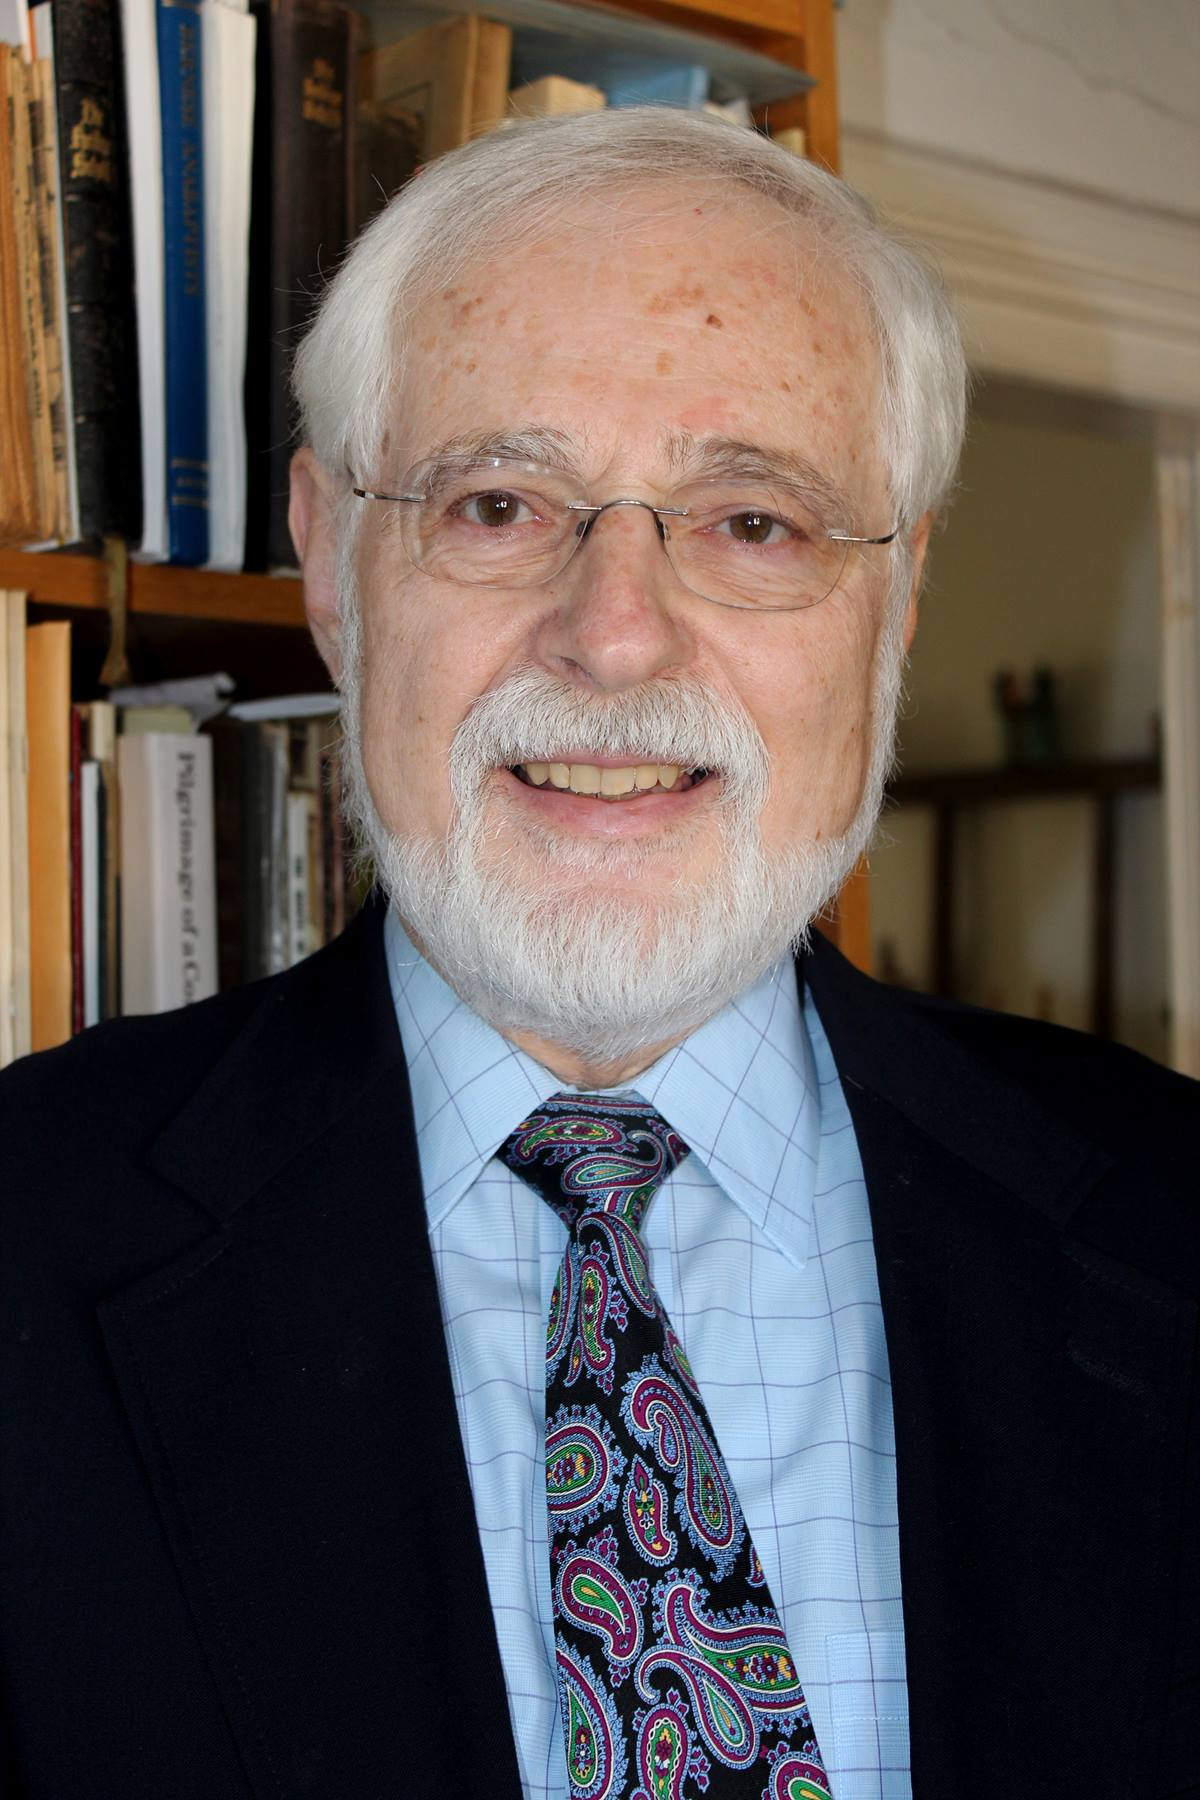 The Rev. George McClain, executive director emeritus, Methodist Federation for Social Action Adjunct Faculty: New York Theological Seminary, The College of New Jersey.